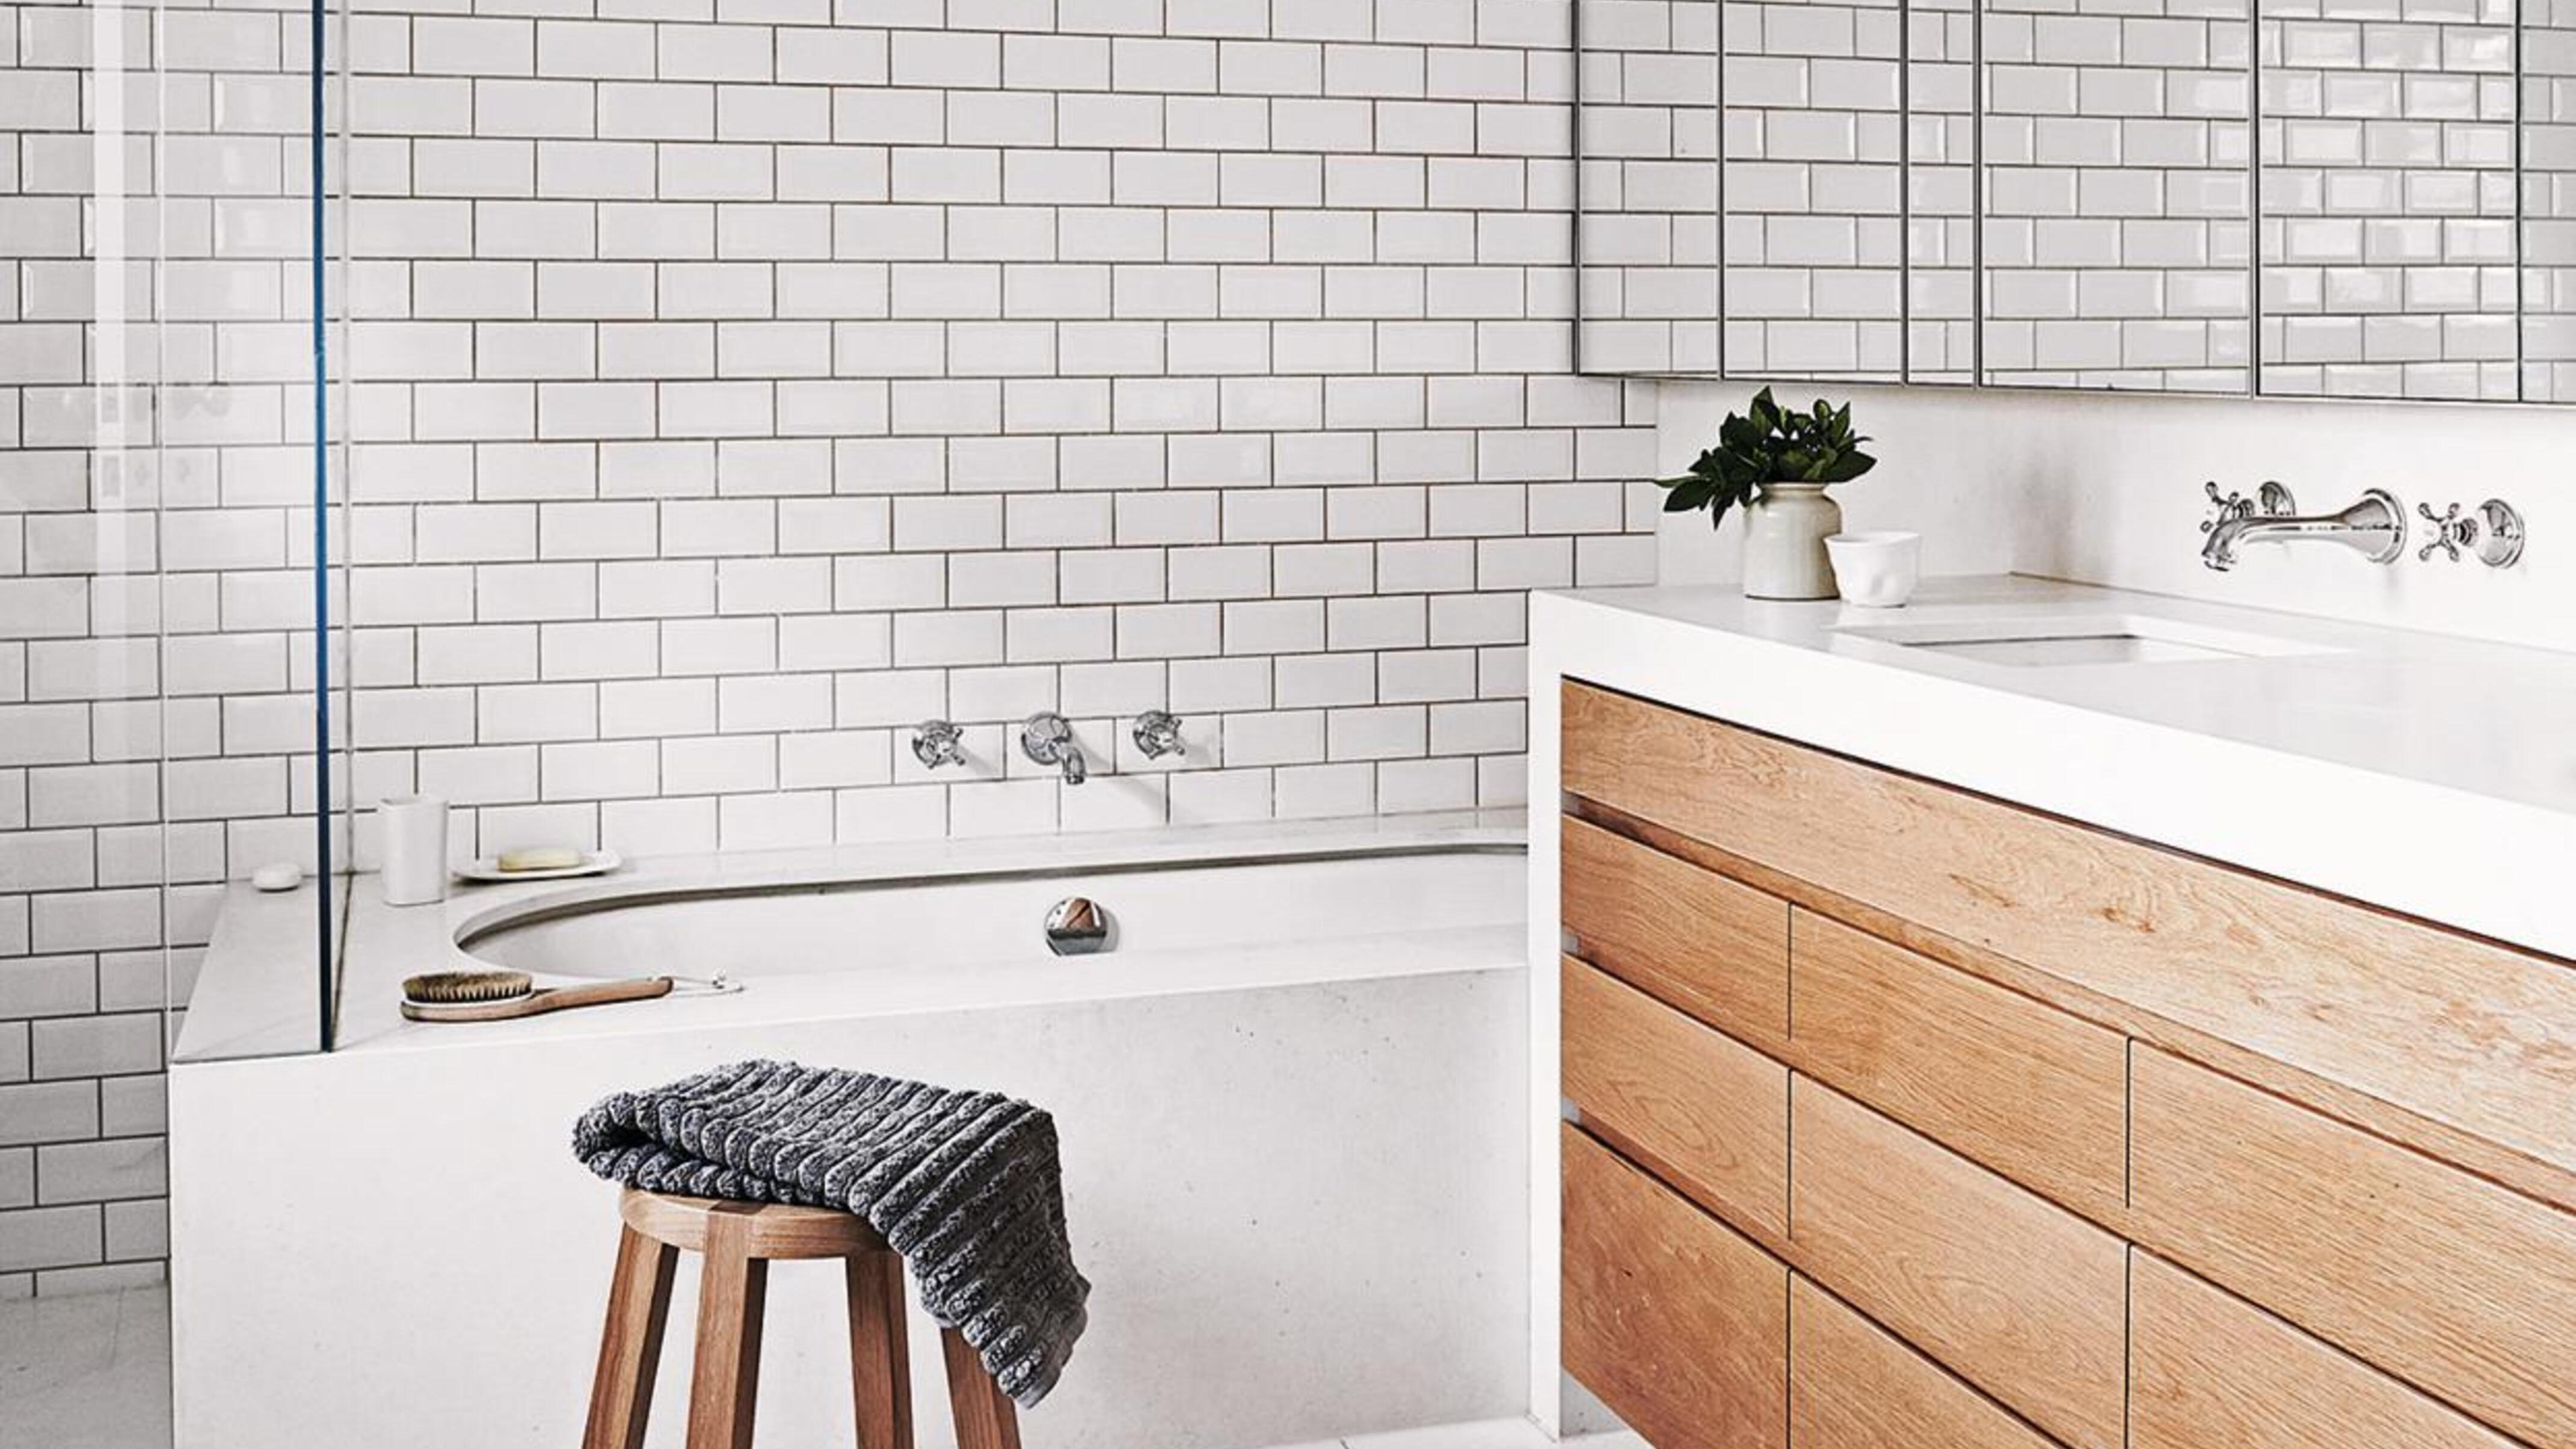 Bathroom featuring white tiled walls.